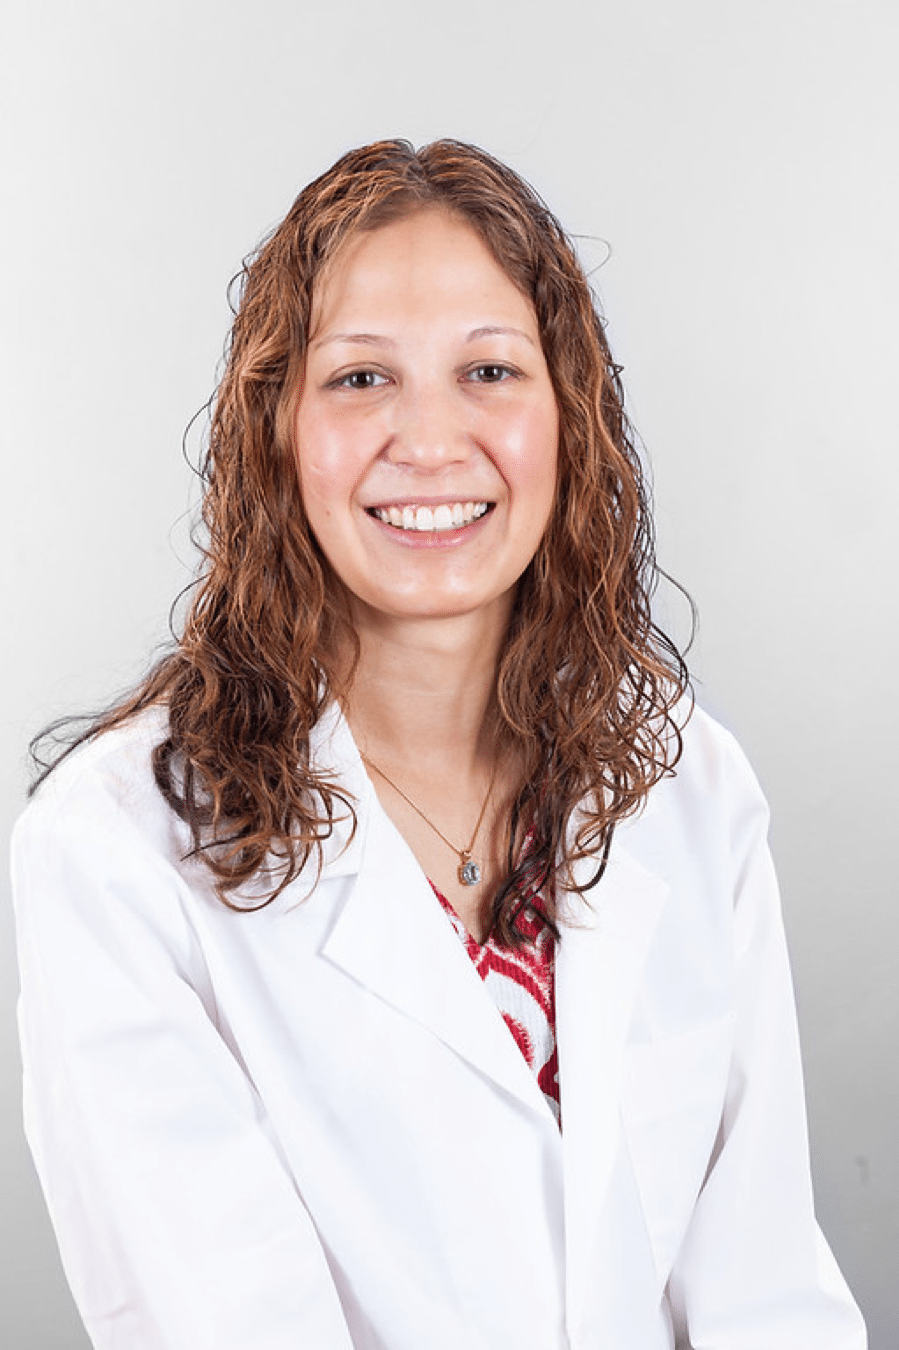 Photo of Jessica Booth, MD